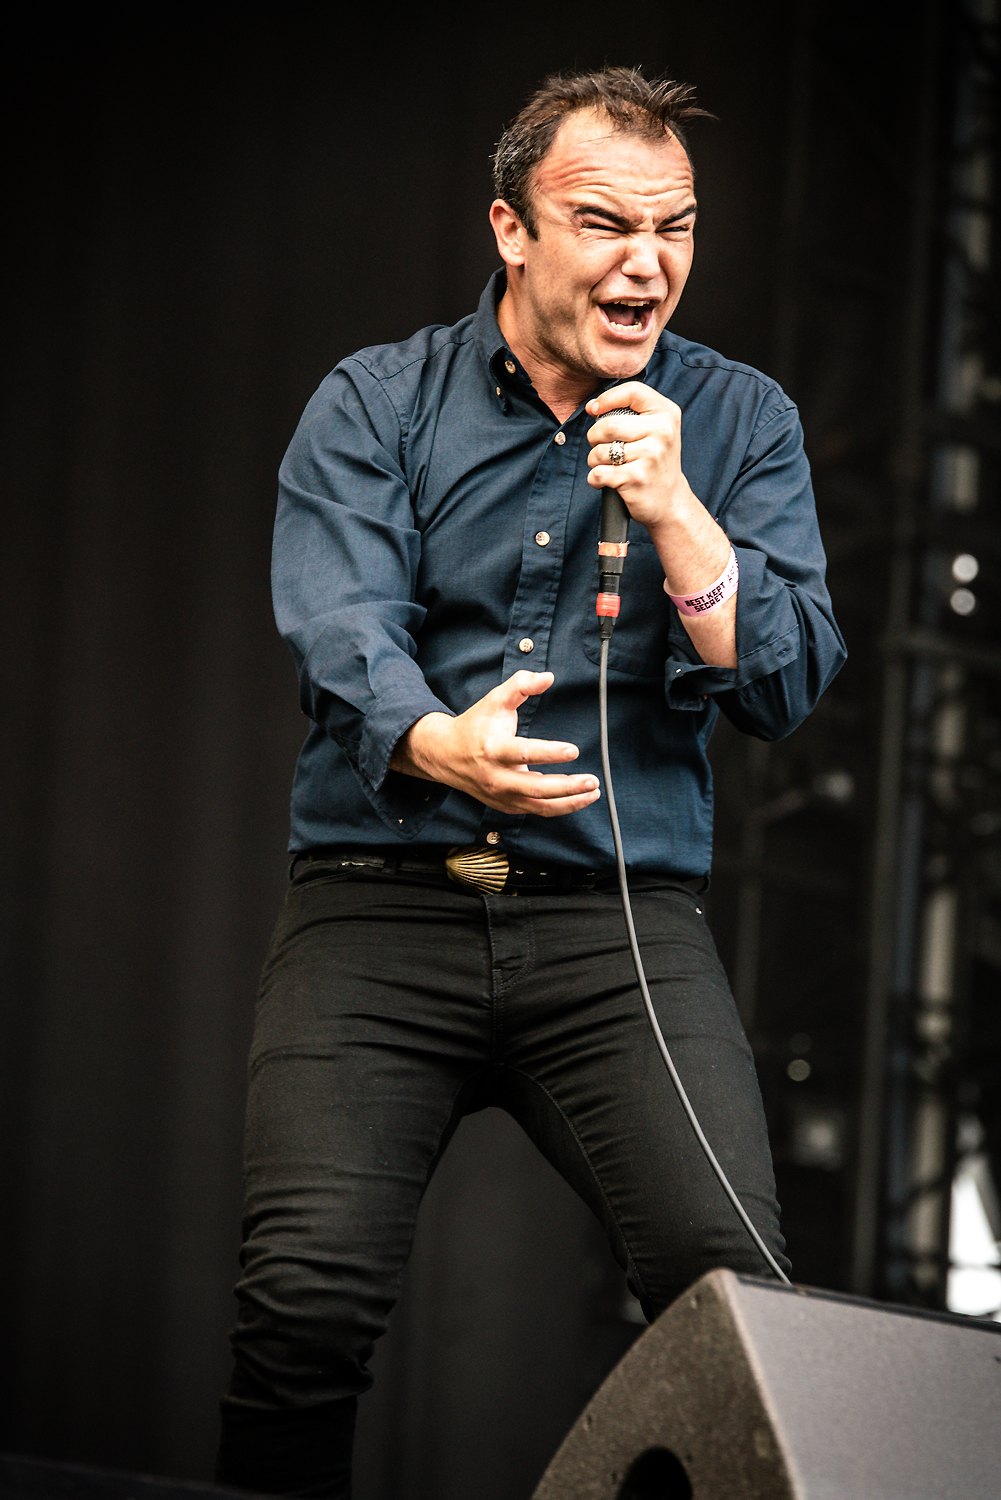 Future Islands @ Best Kept Secret 2018 (Jan Van den Bulck)